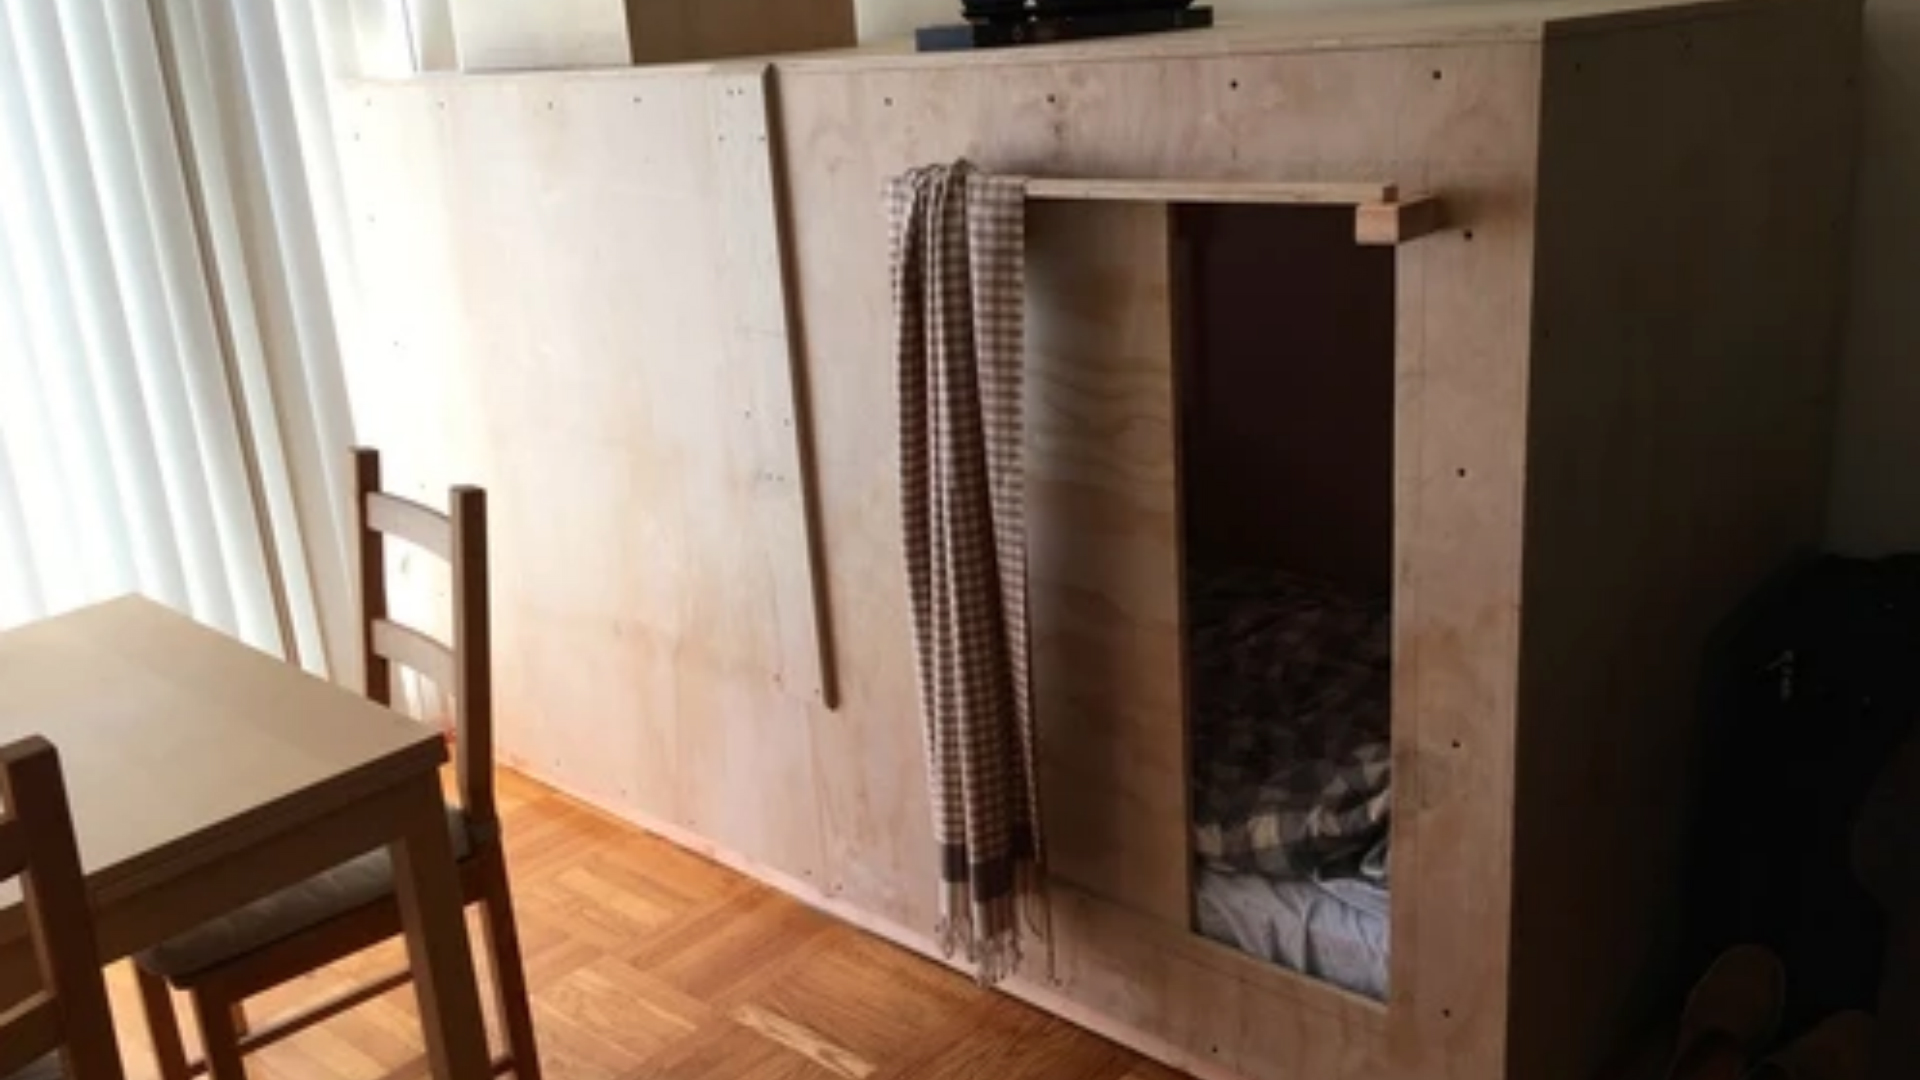 Man moves to San Francisco, pays $400 a month to sleep in wooden box in friends' living room